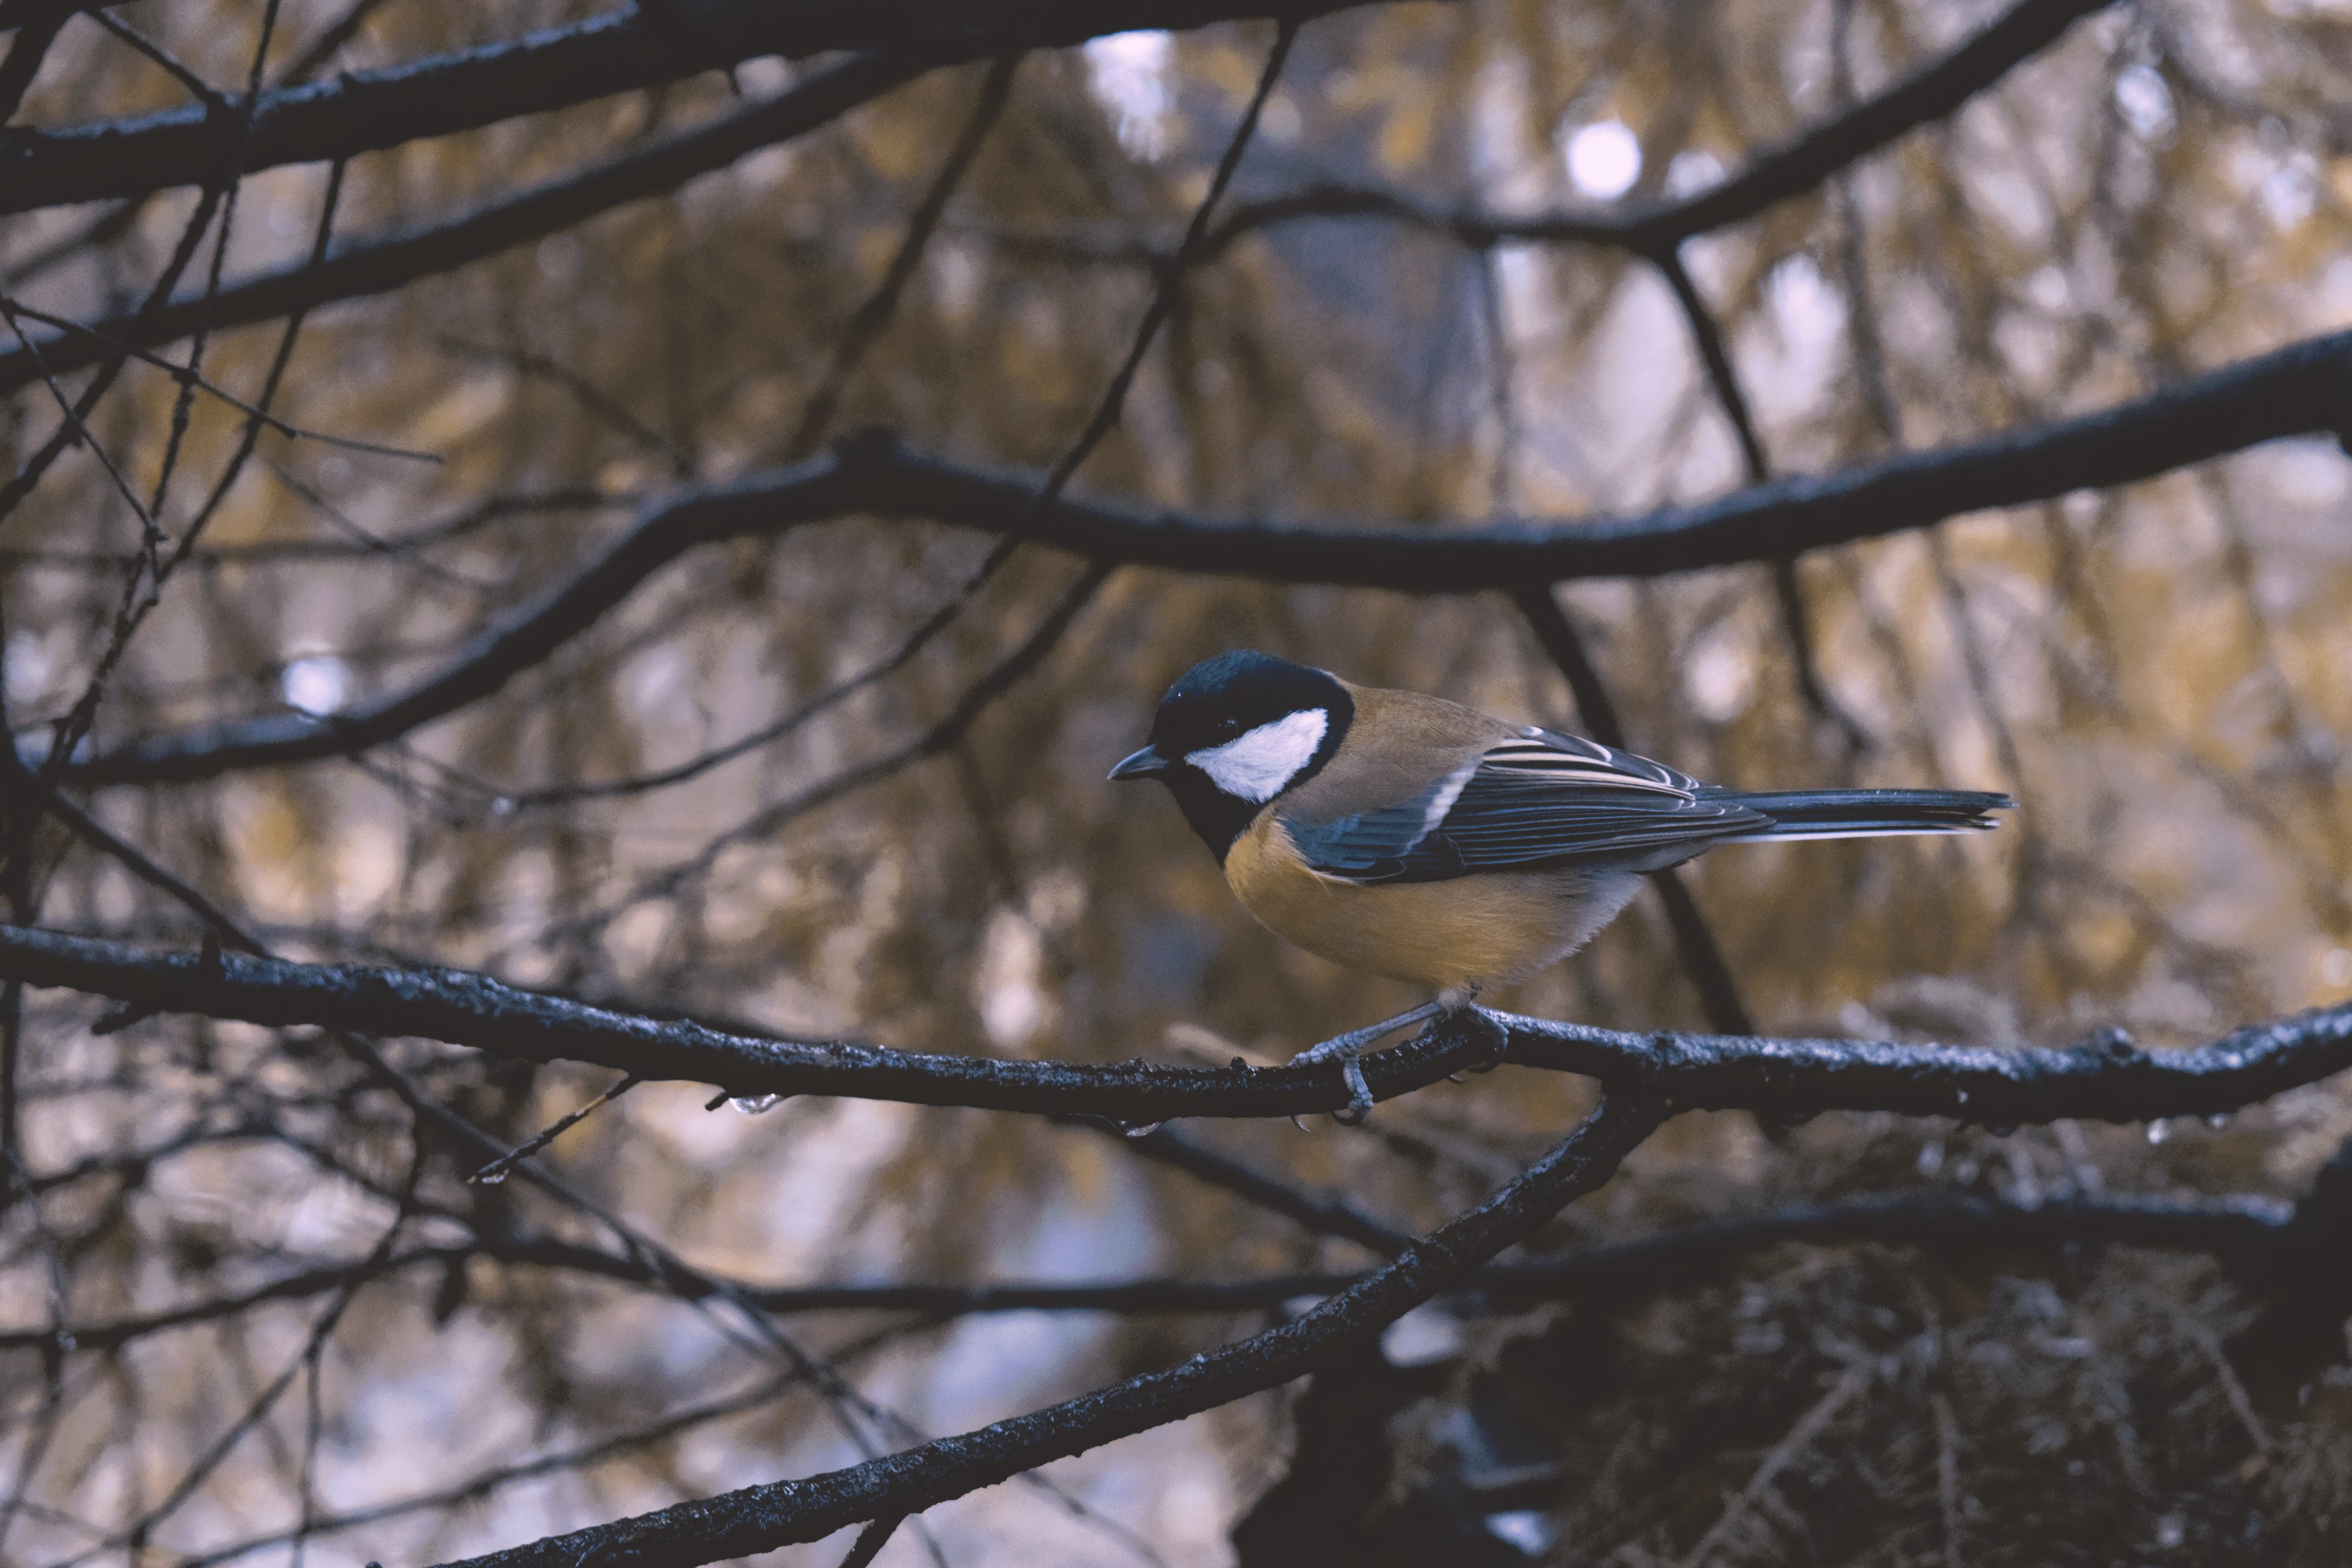 brown, white, and black bird perch on tree branch